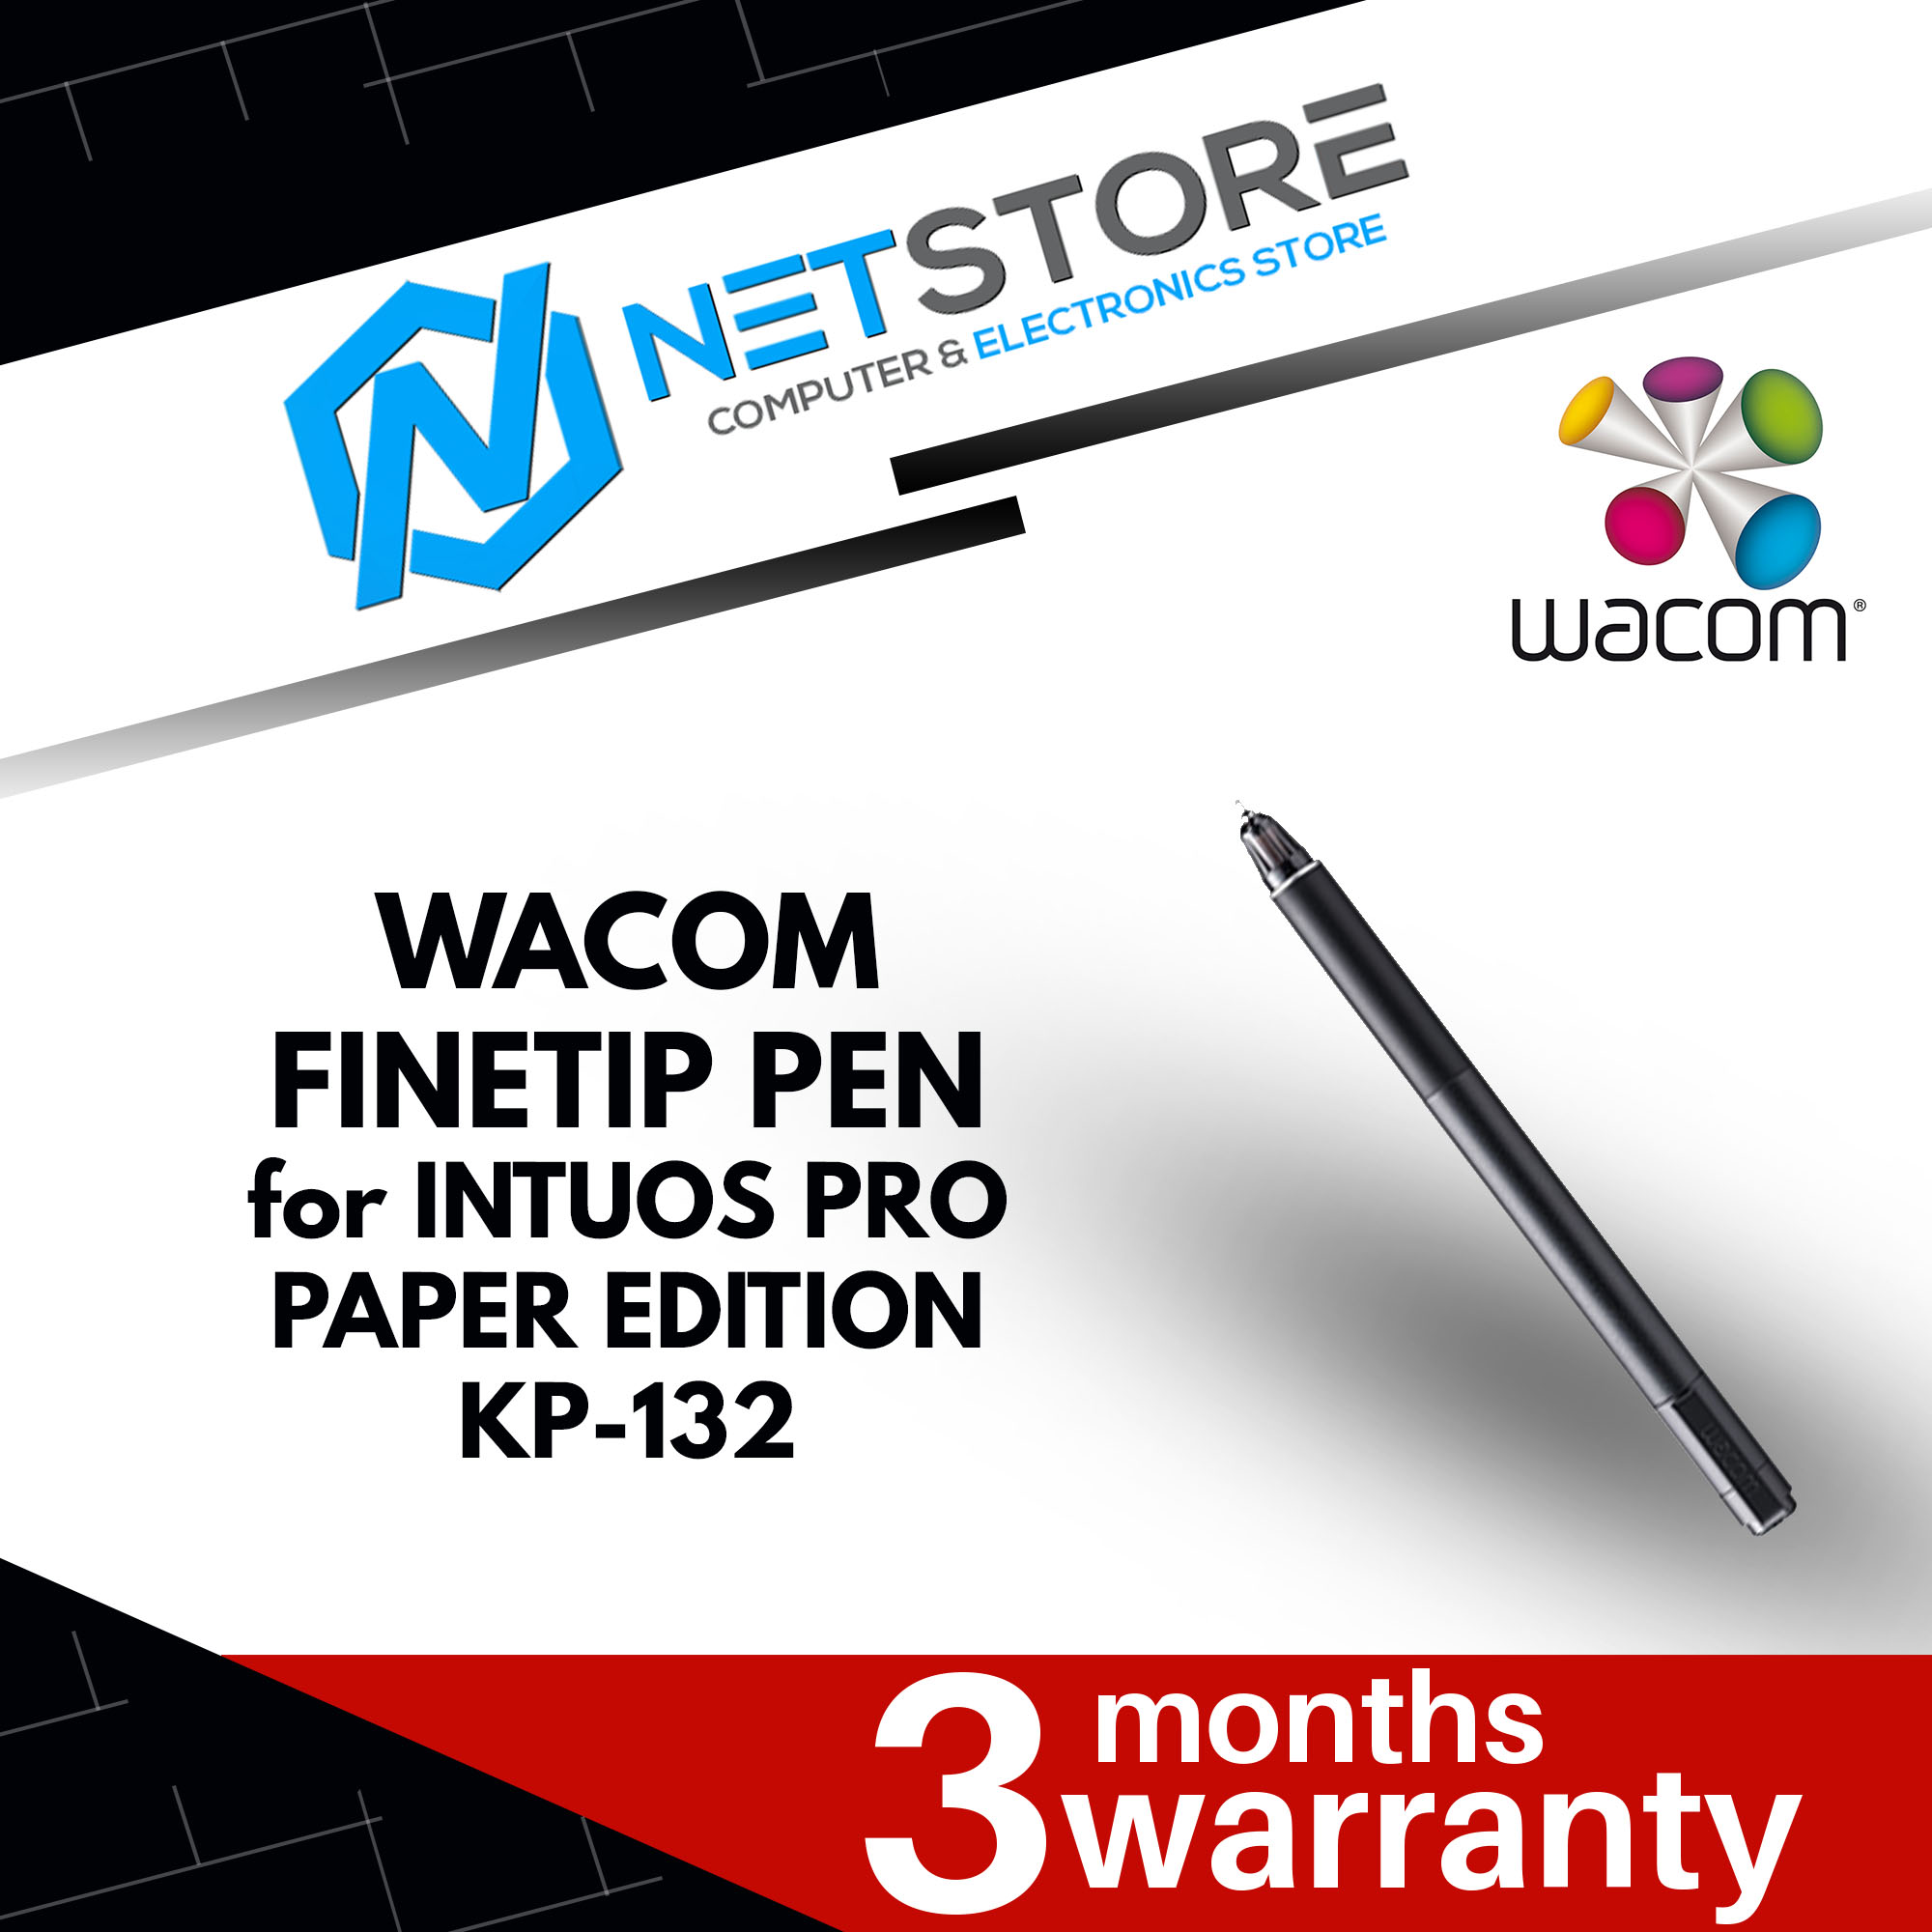 WACOM FINETIP PEN FOR INTUOS PRO PAPER EDITION TABLET - KP-132